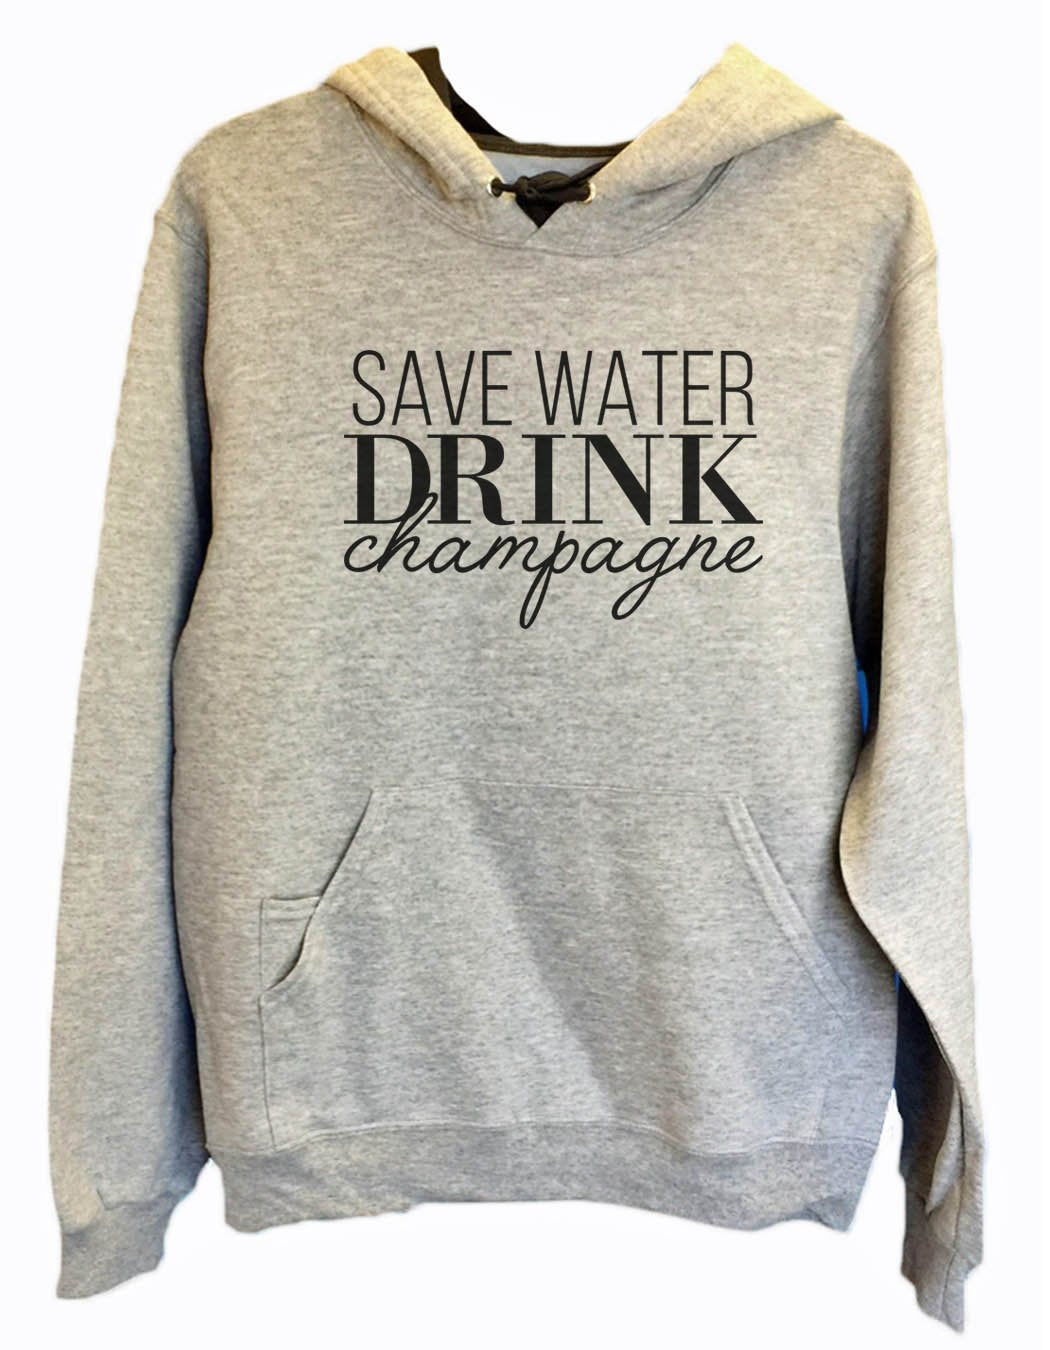 UNISEX HOODIE - Save Water Drink Champagne - FUNNY MENS AND WOMENS HOODED SWEATSHIRTS - 2145 Funny Shirt